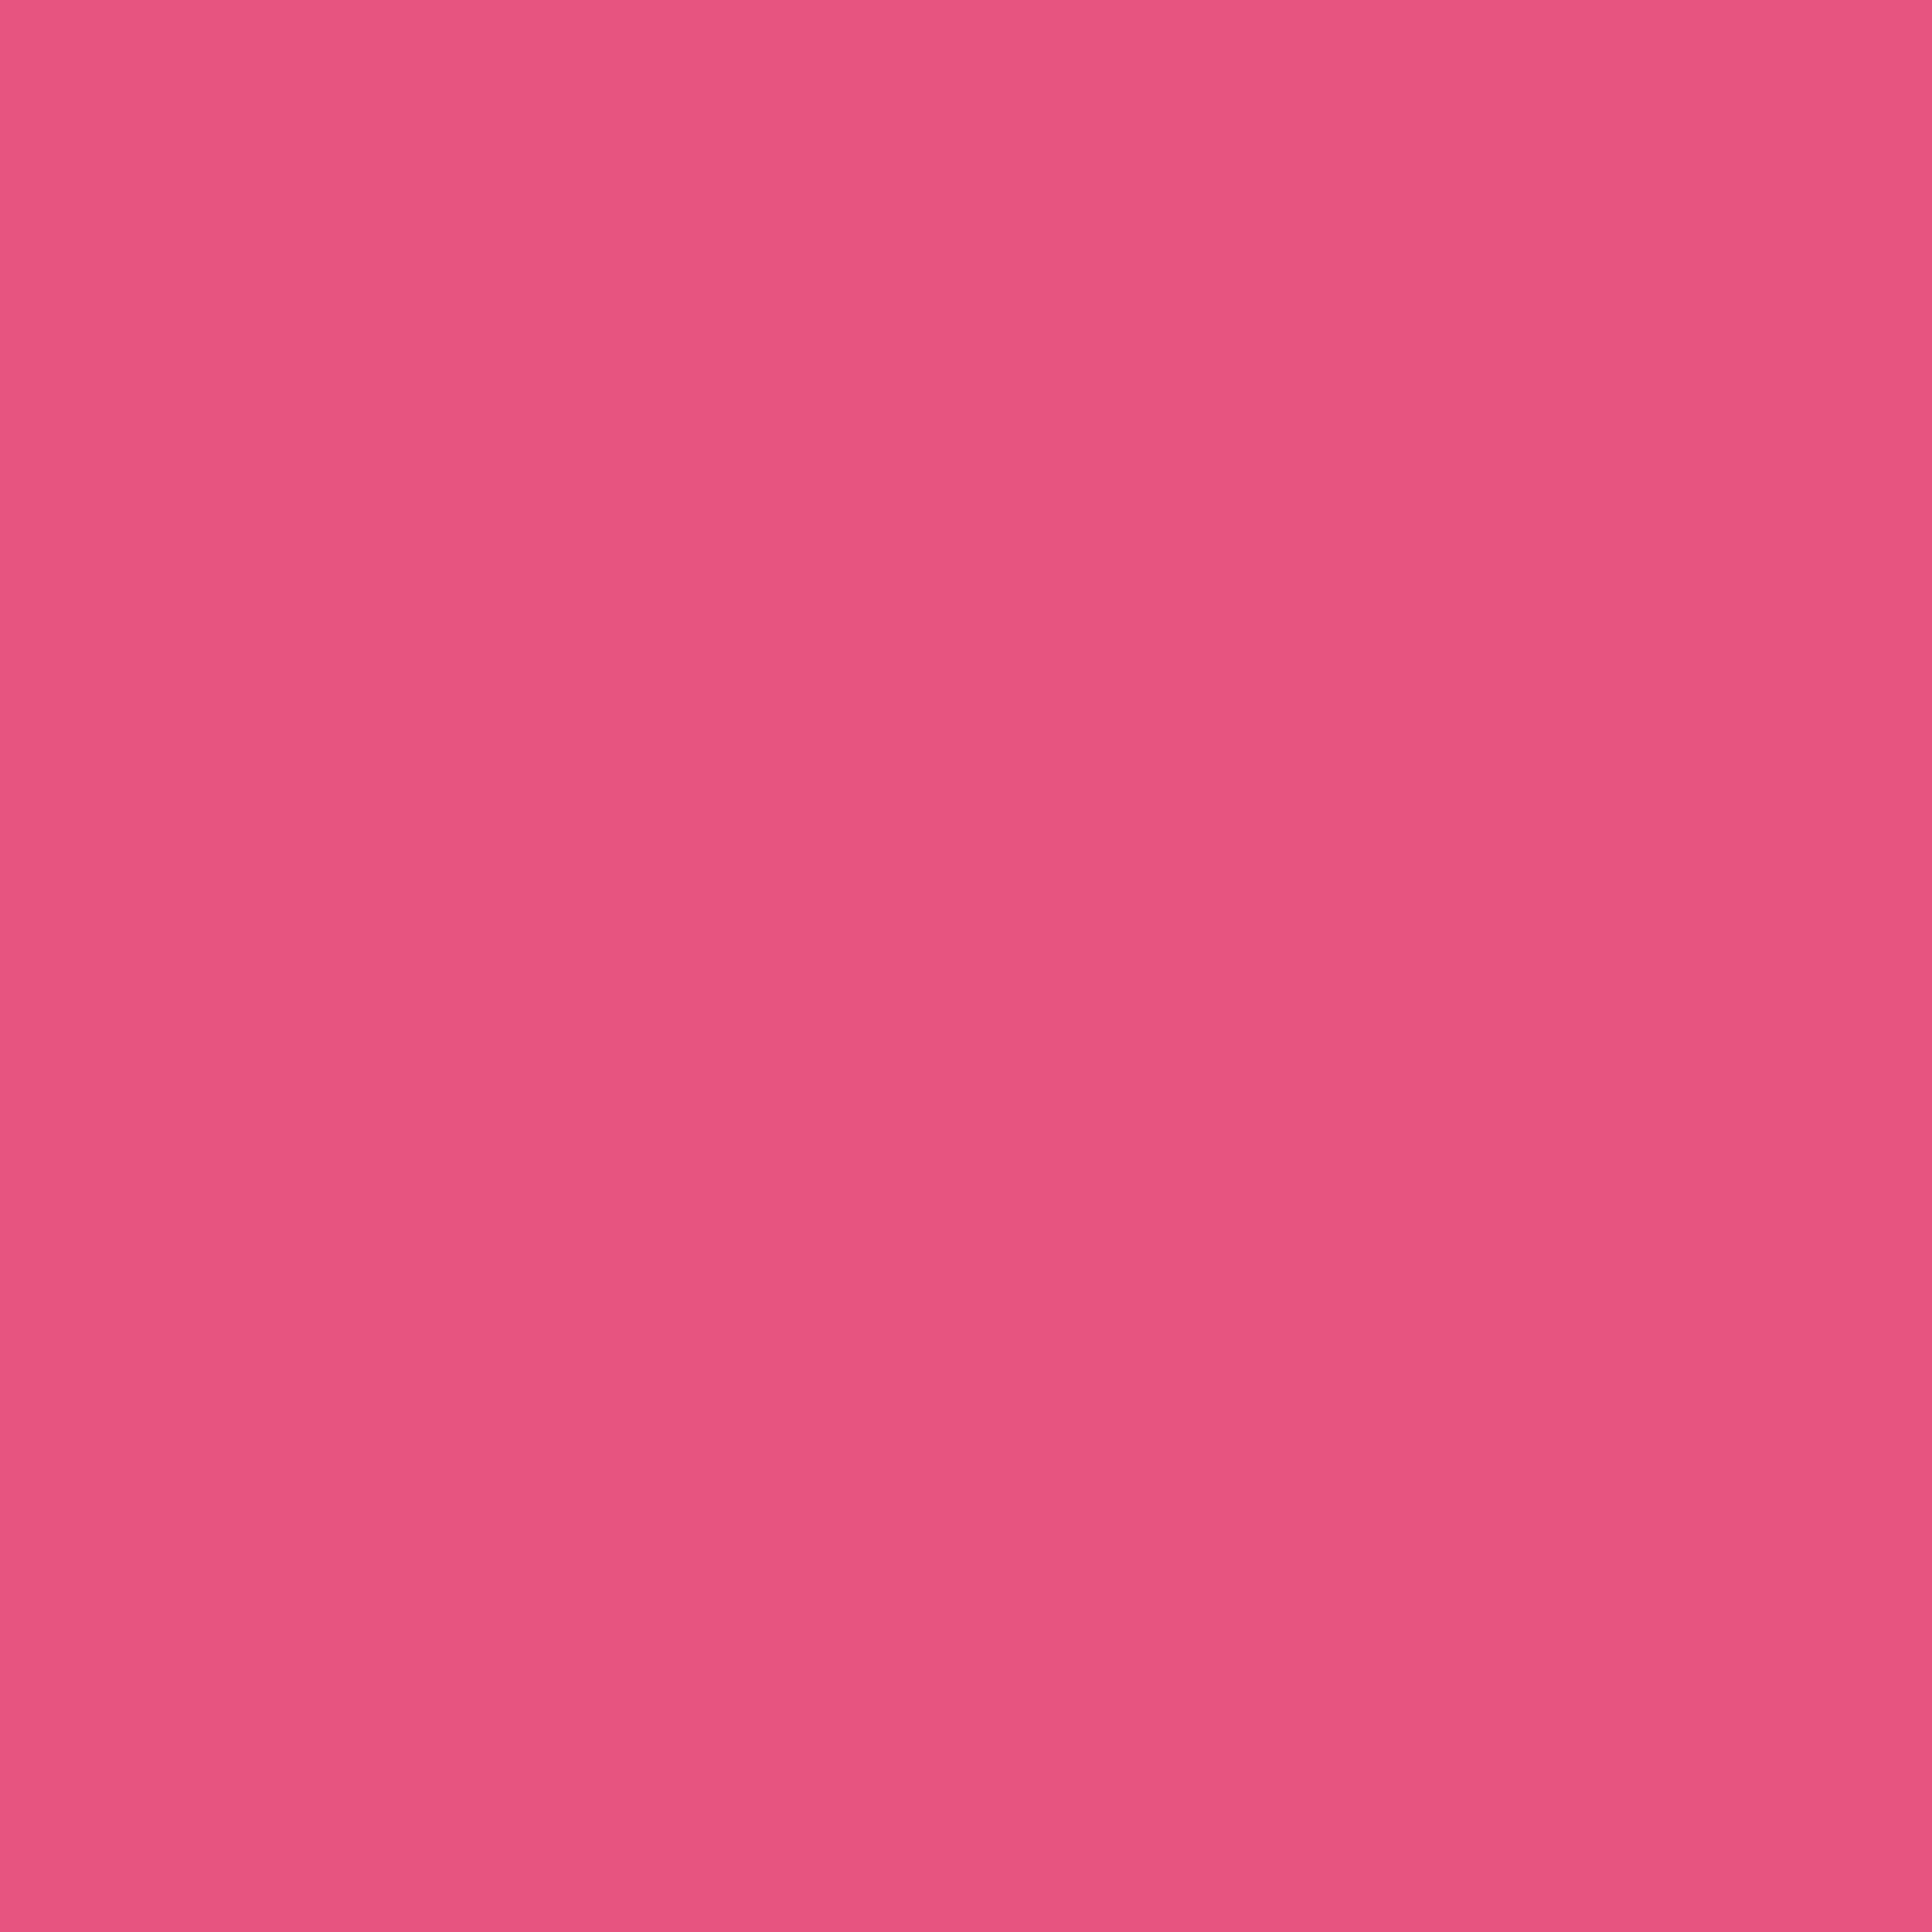 3600x3600 Dark Pink Solid Color Background